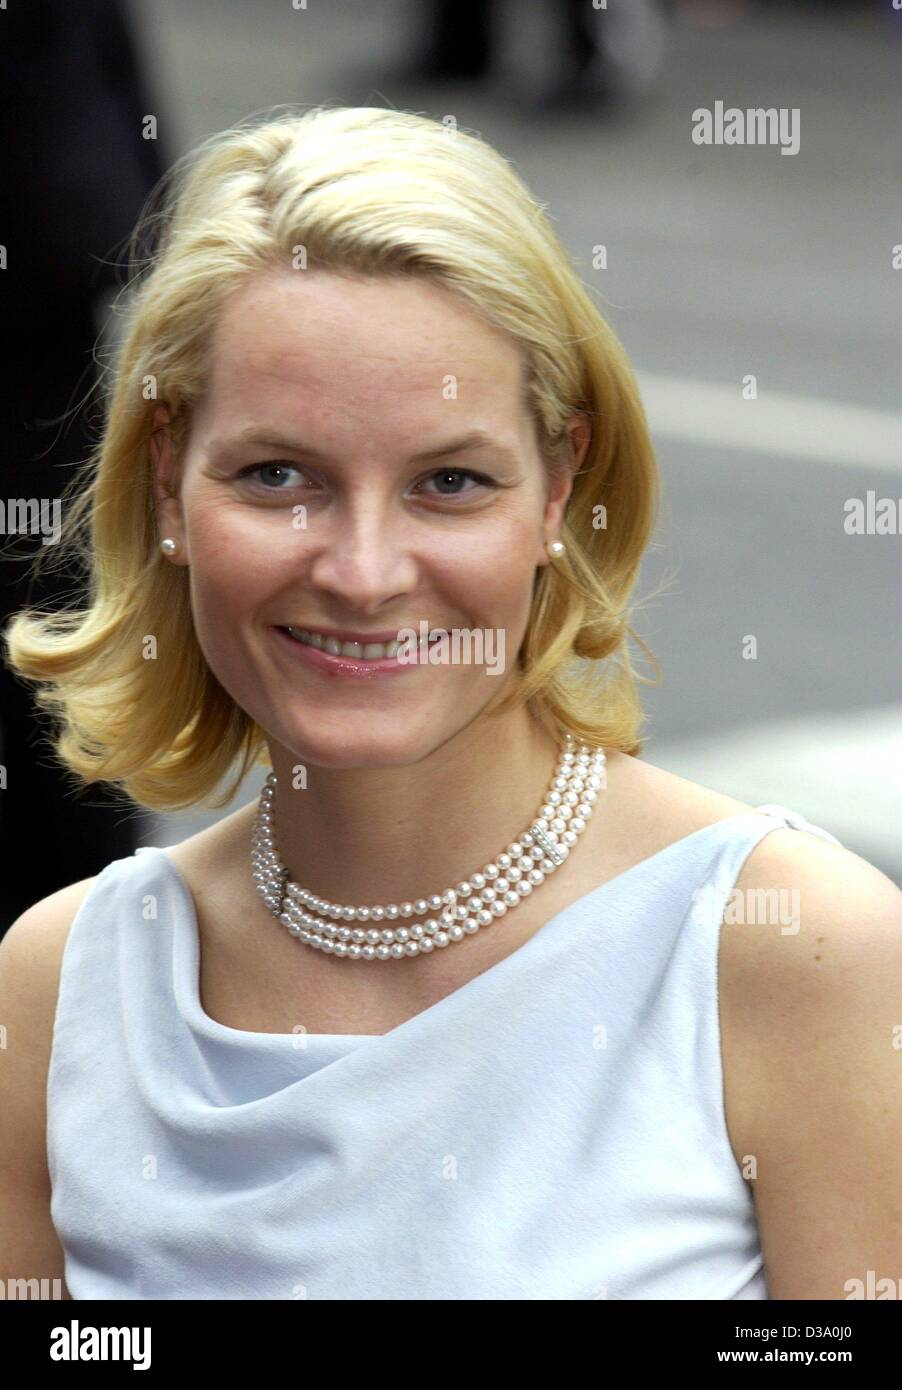 Dpa Norwegian Crown Princess Mette Marit Smiles As She